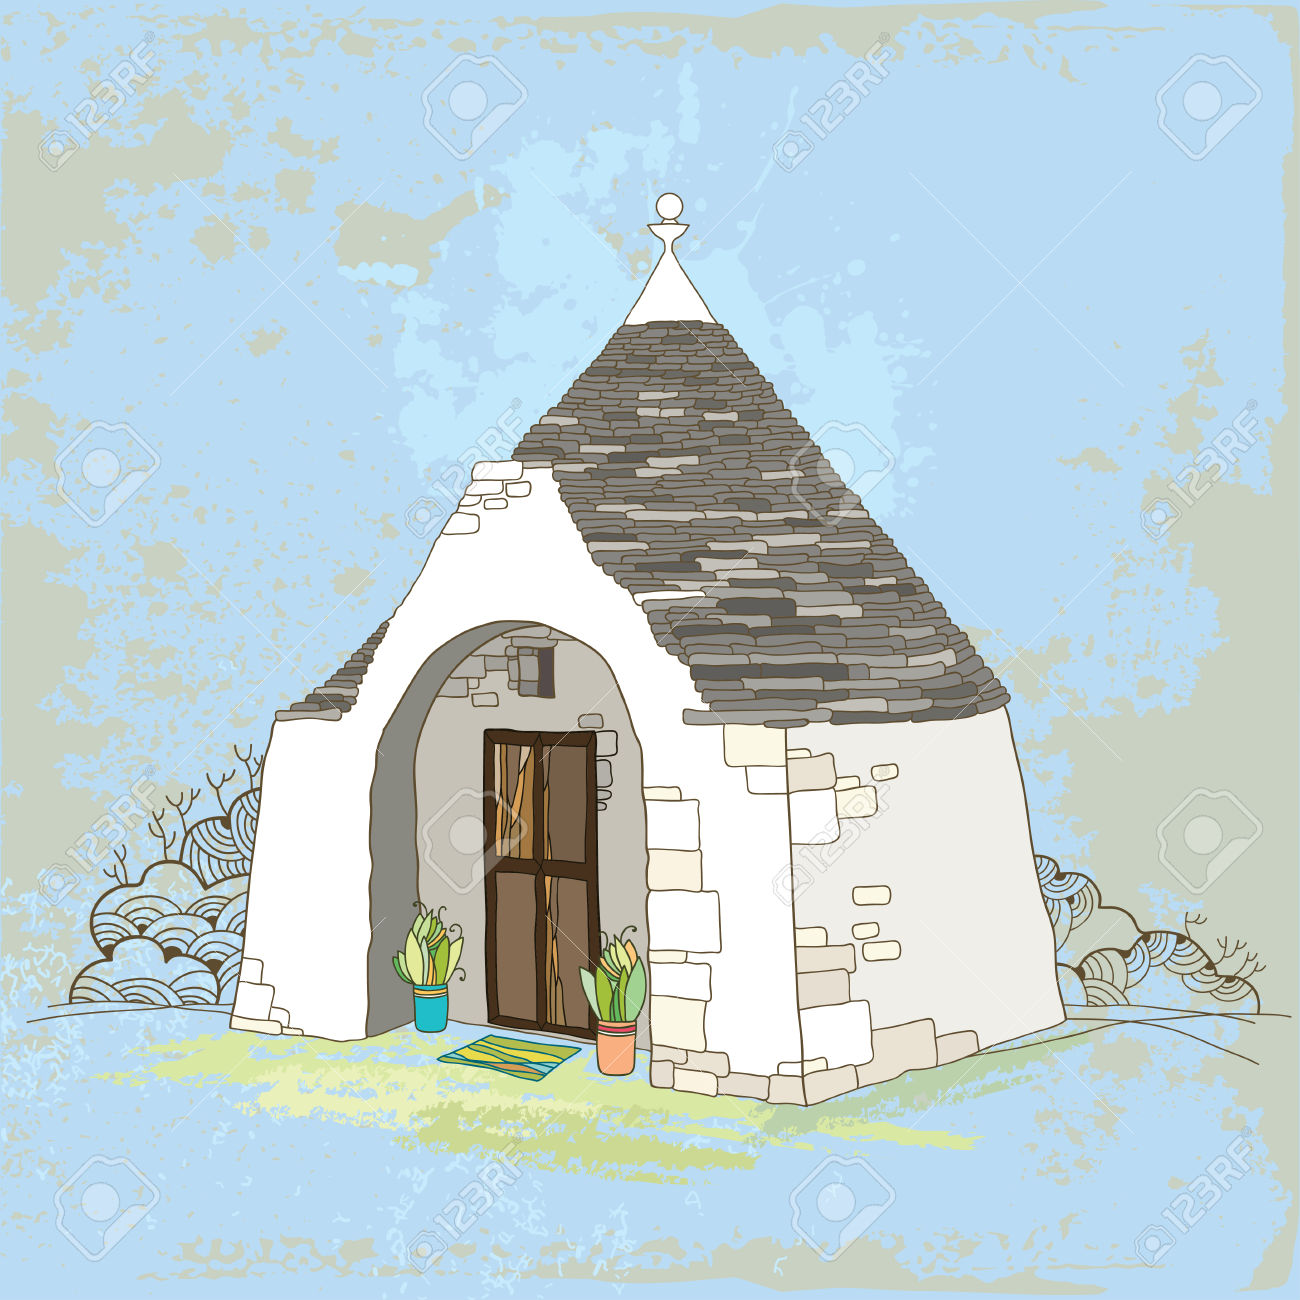 Traditional Trulli House With Conical Roof On The Textured.